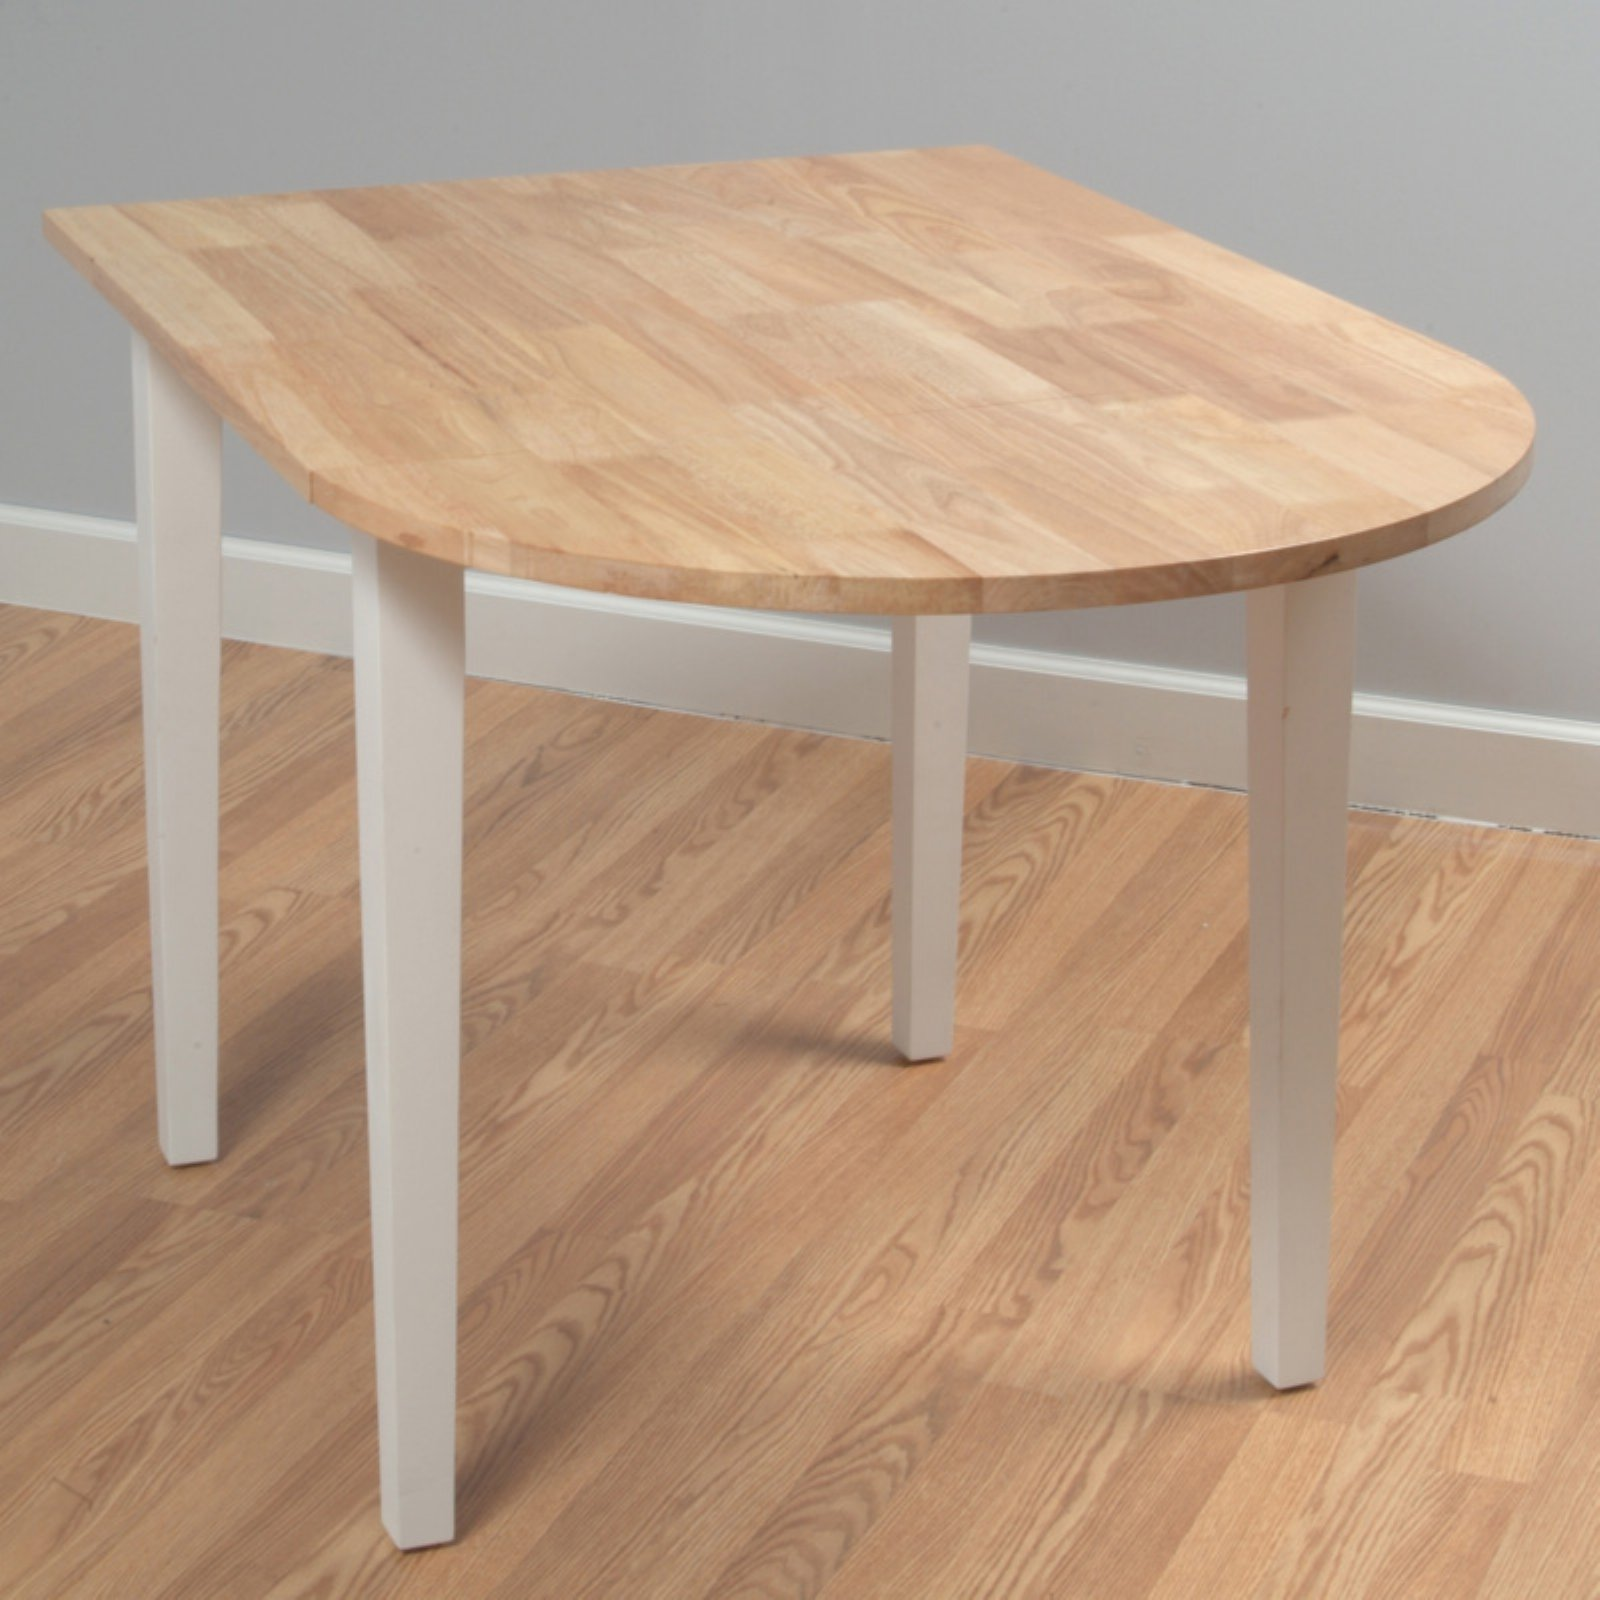 Target Marketing Systems Tiffany Dining Table with Drop L...